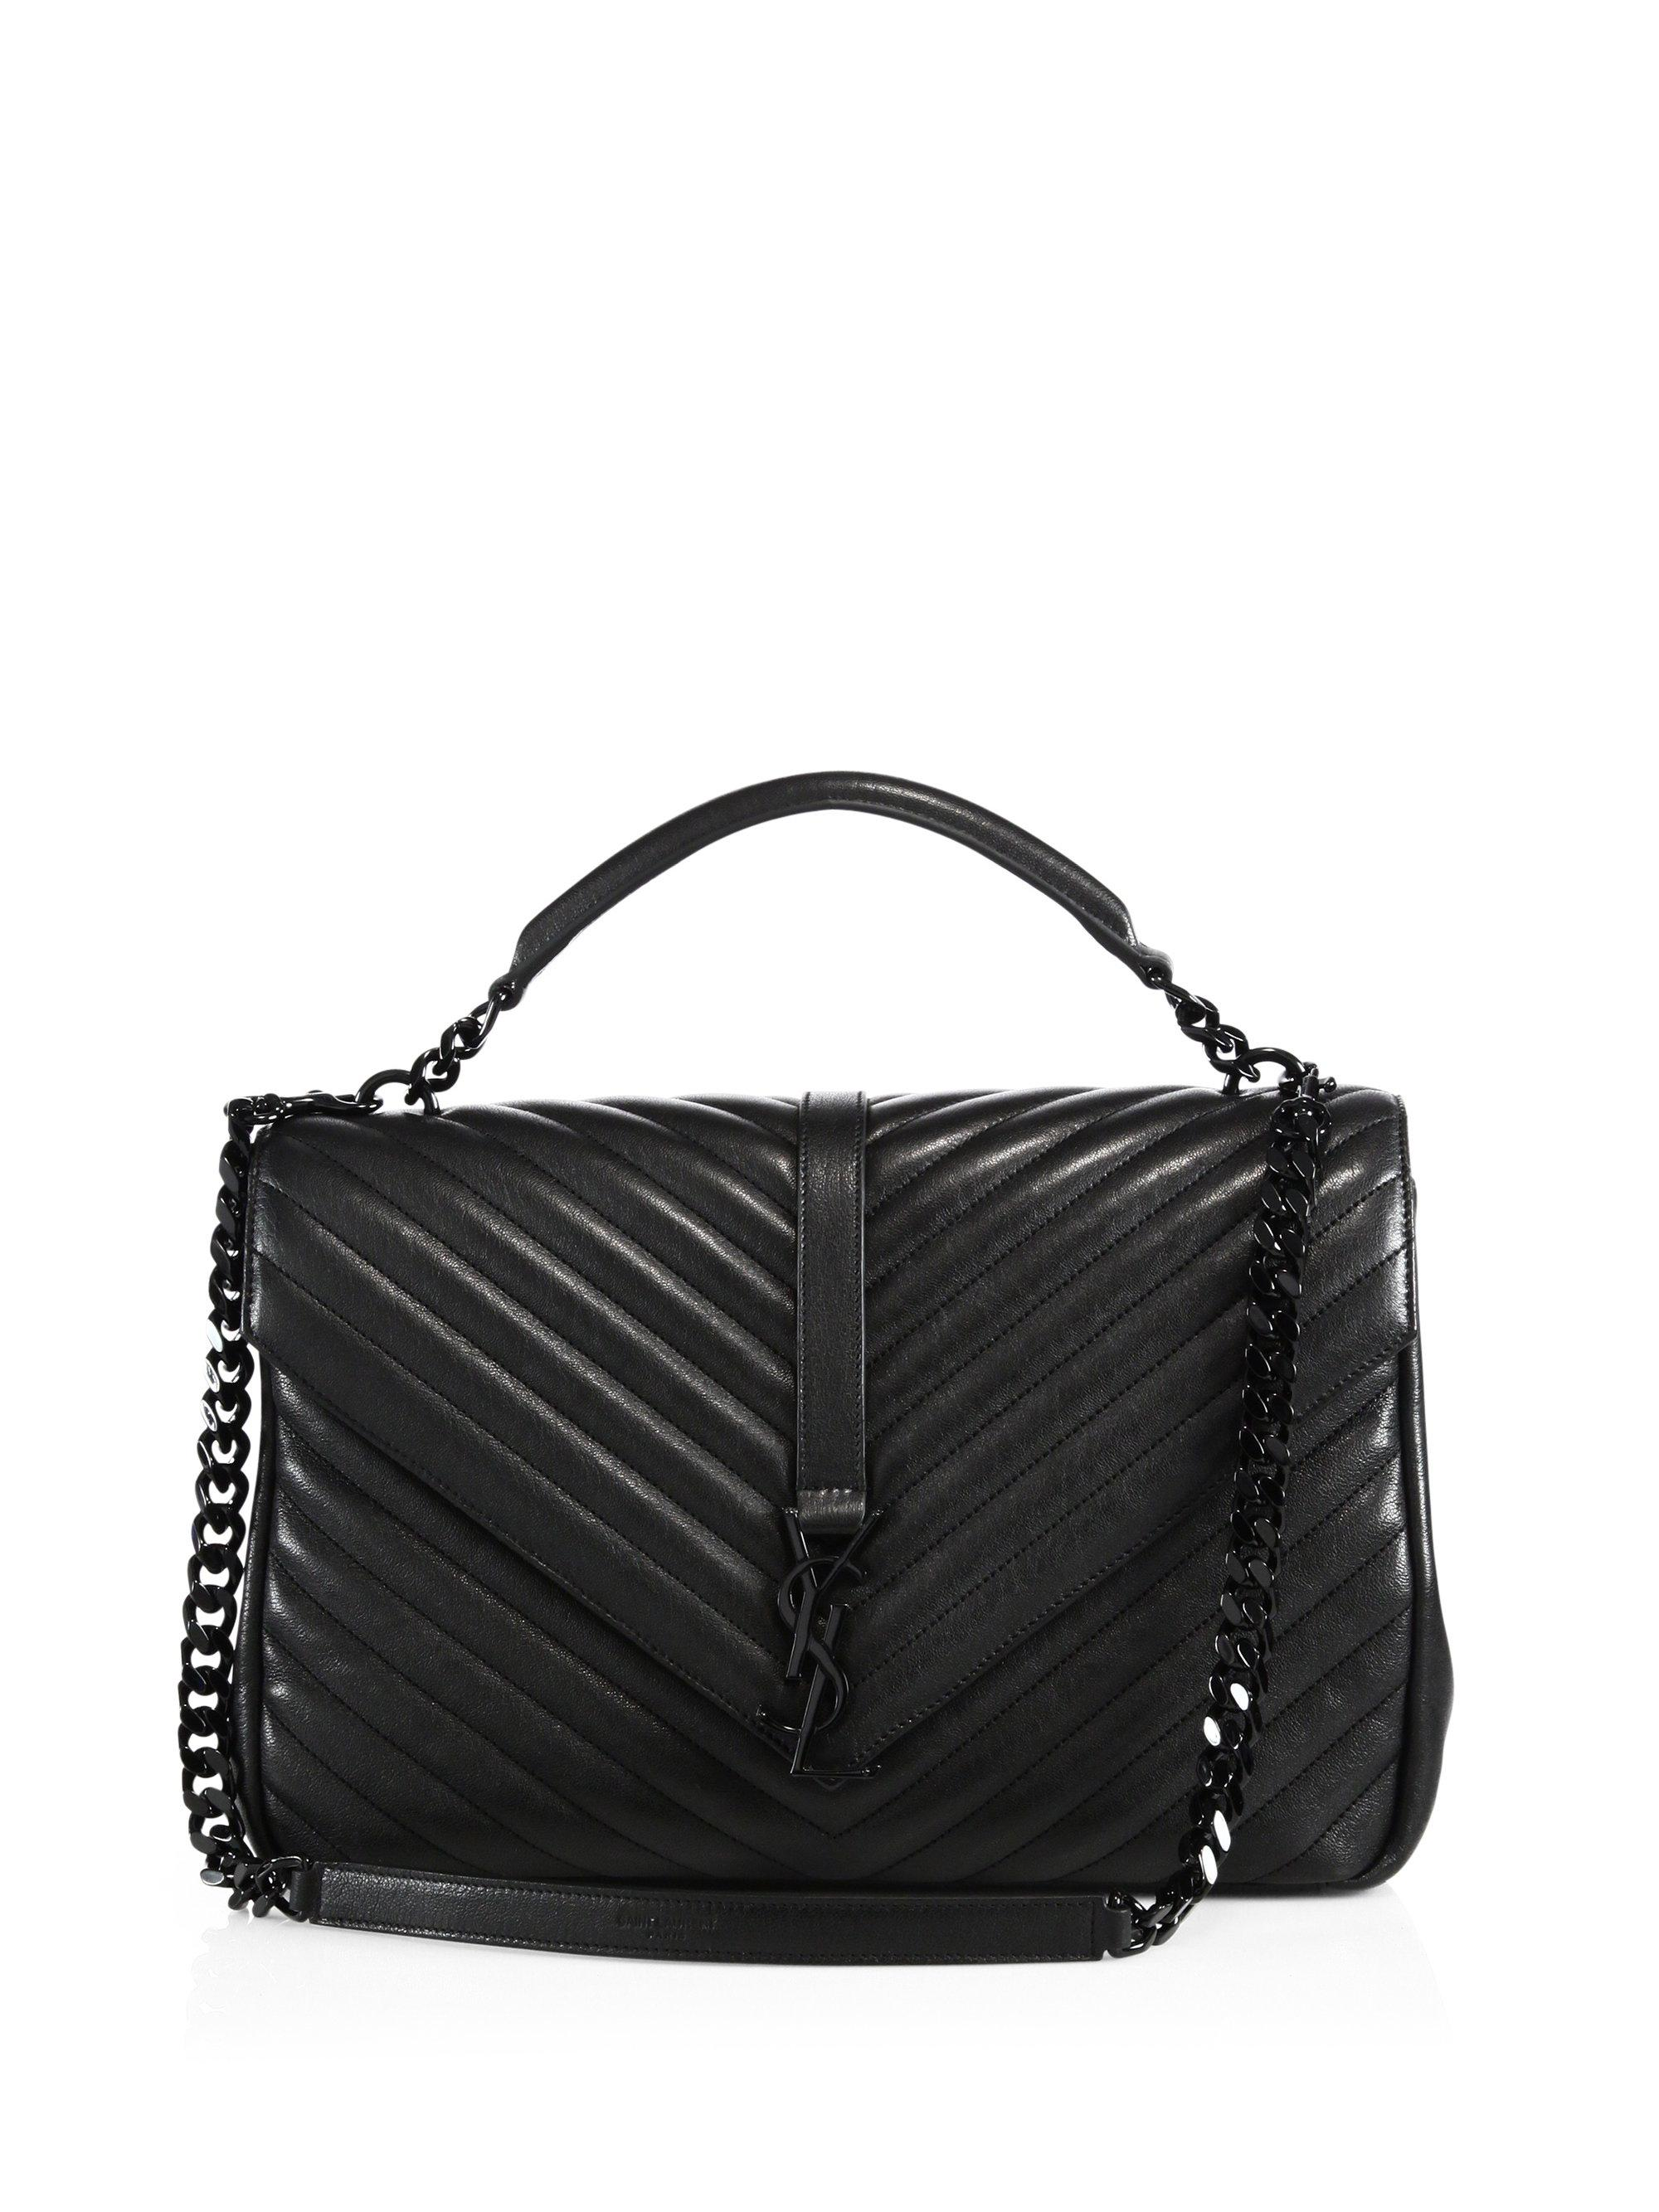 7b4a2818a7 Saint laurent College Monogram Large Quilted Leather .